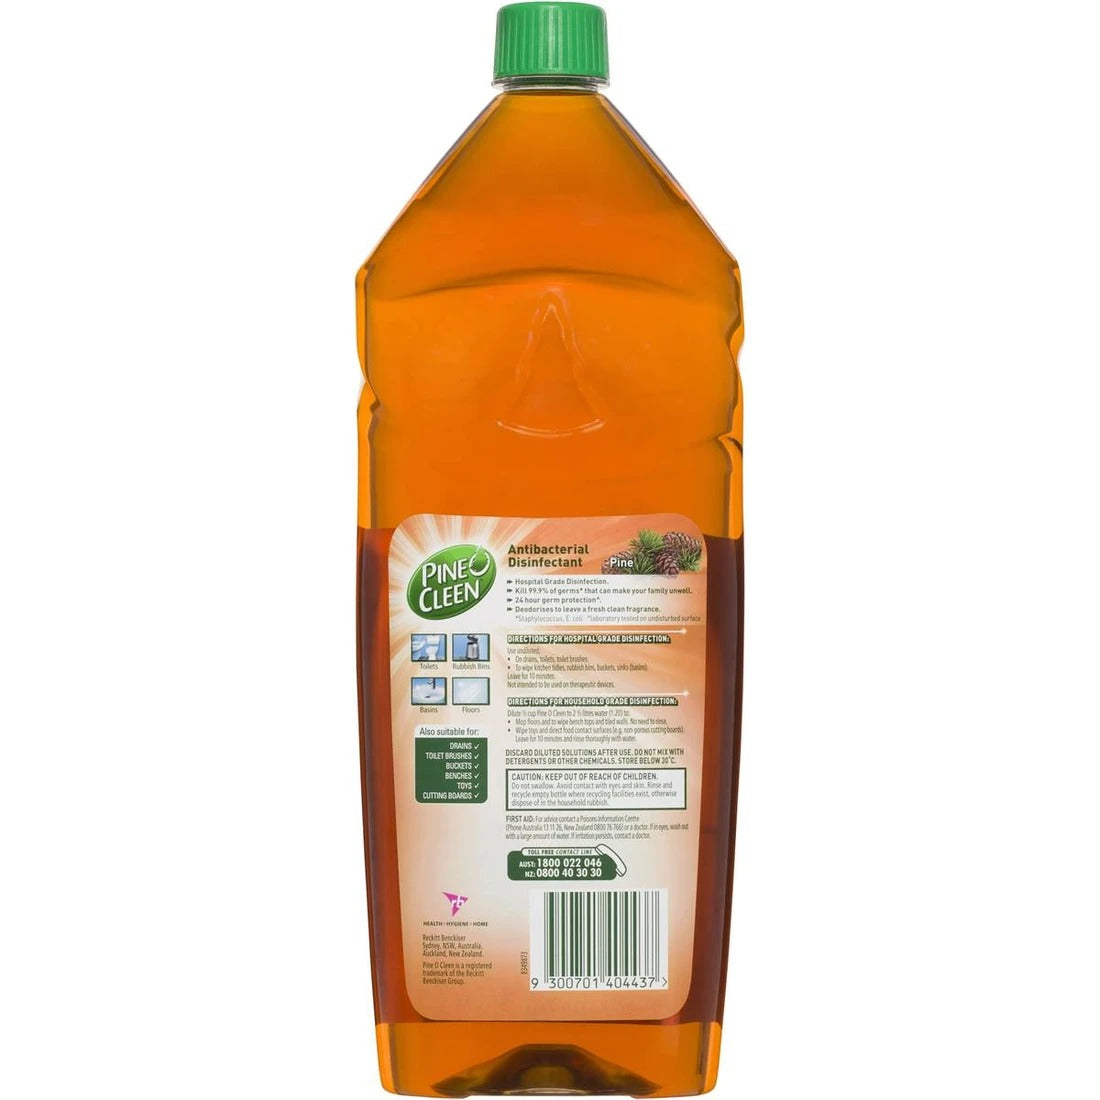 Pine O Cleen Disinfectant 1.25L - Latest Living